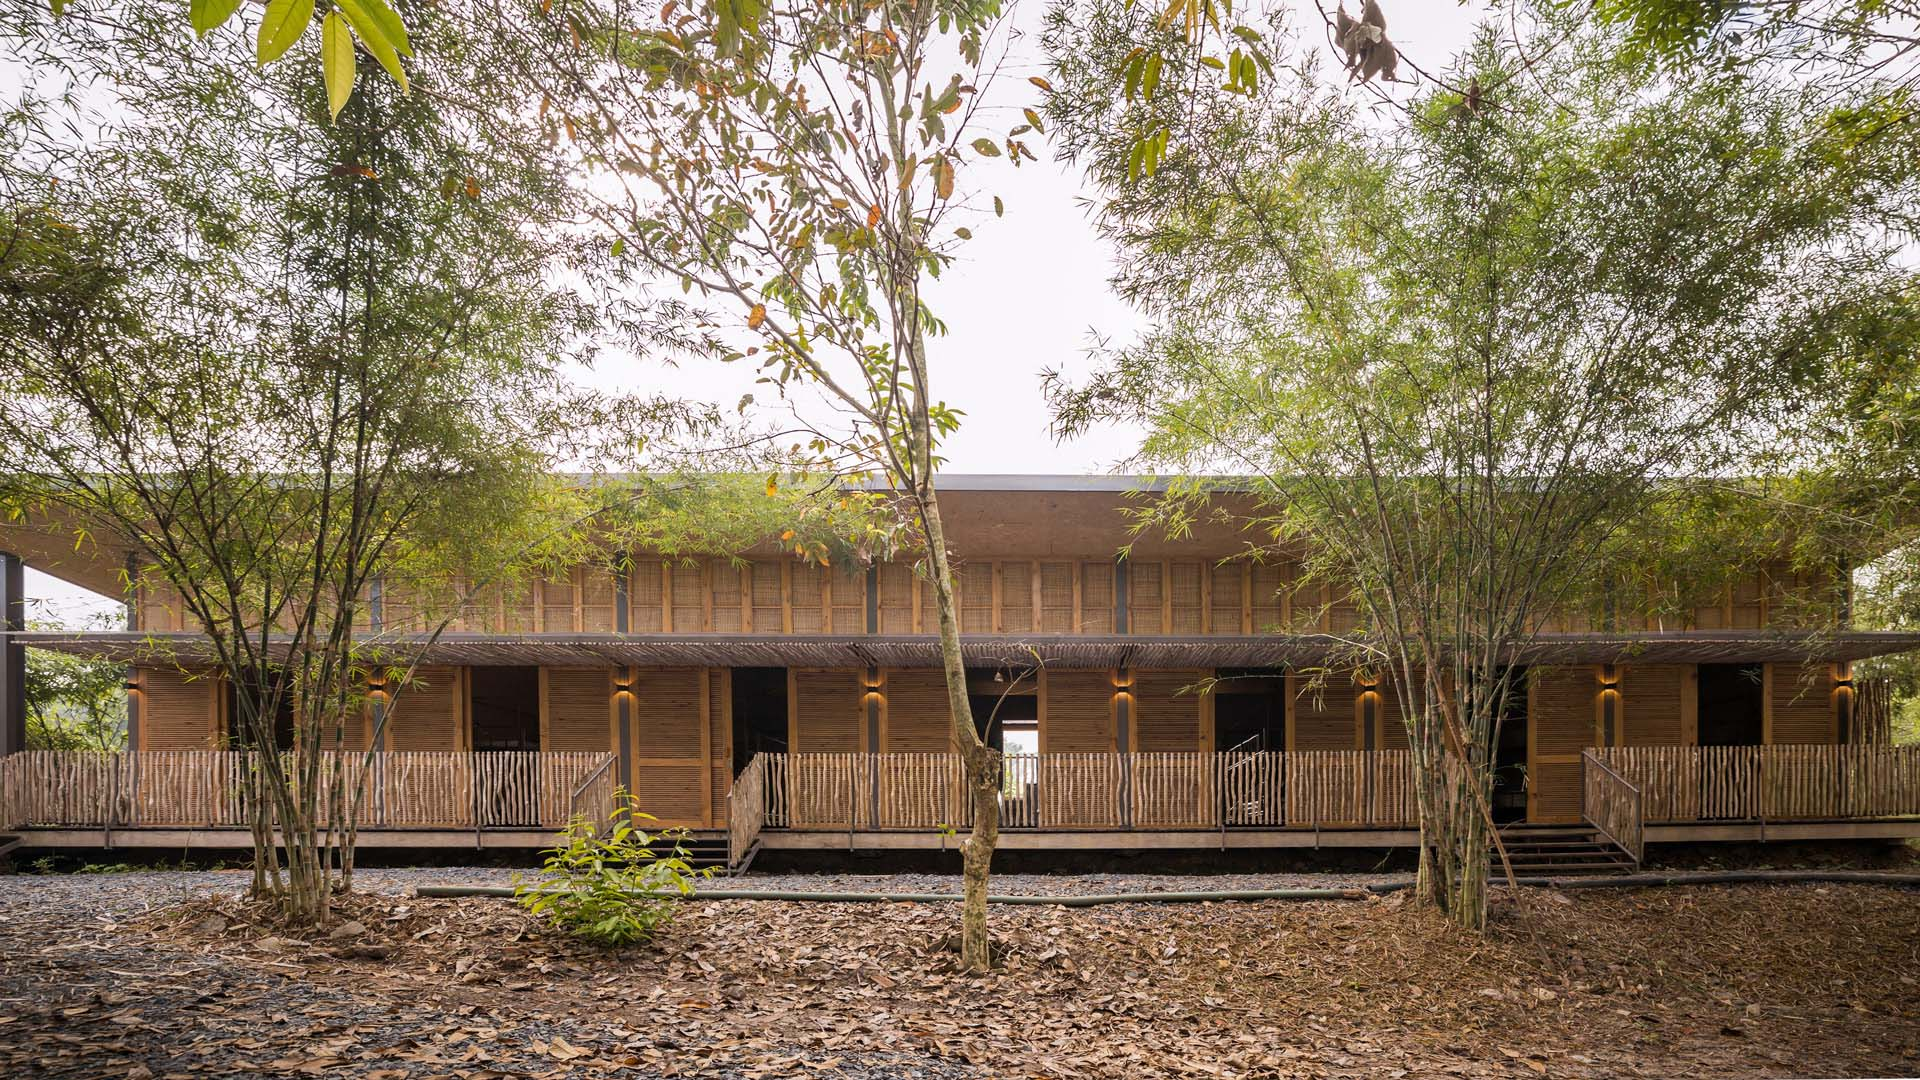 Hippo Farm Bioclimatic Dormitory; A Place to Reconnect with Nature